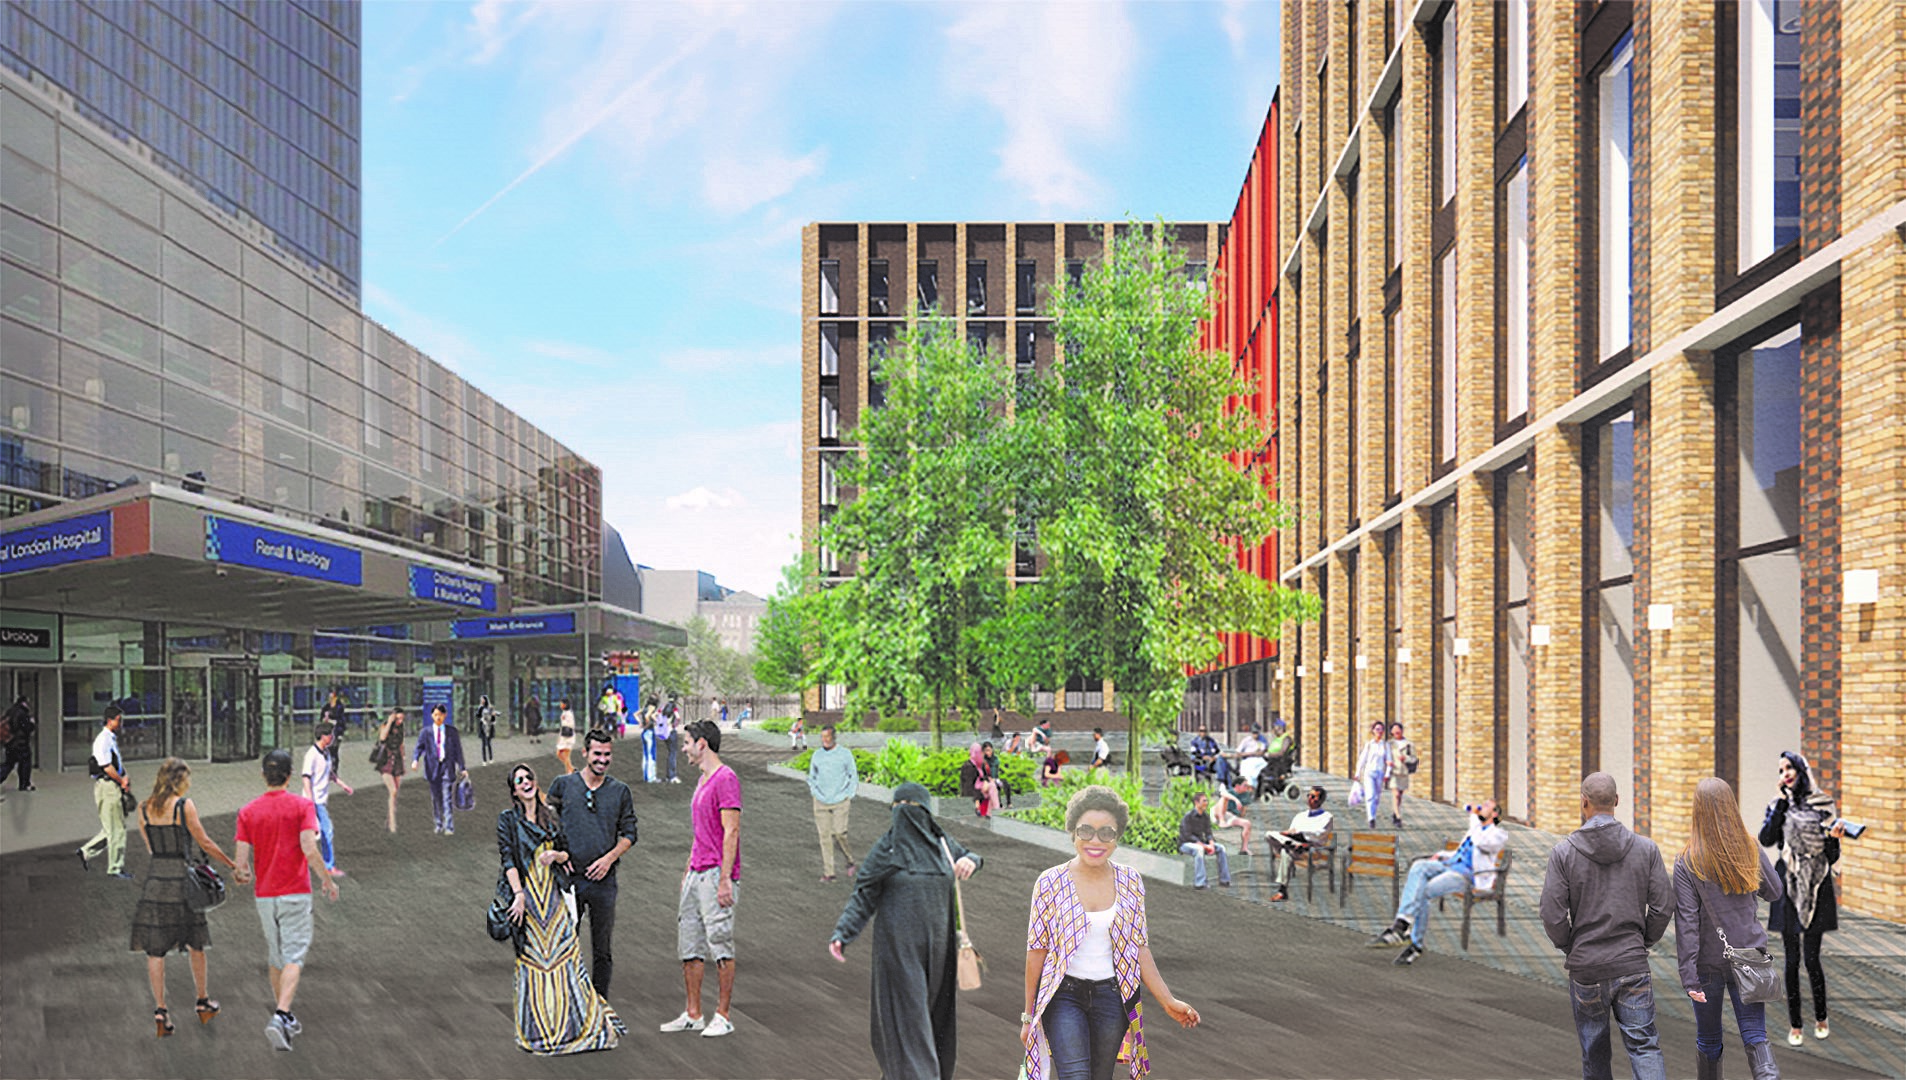 Vision for the Square